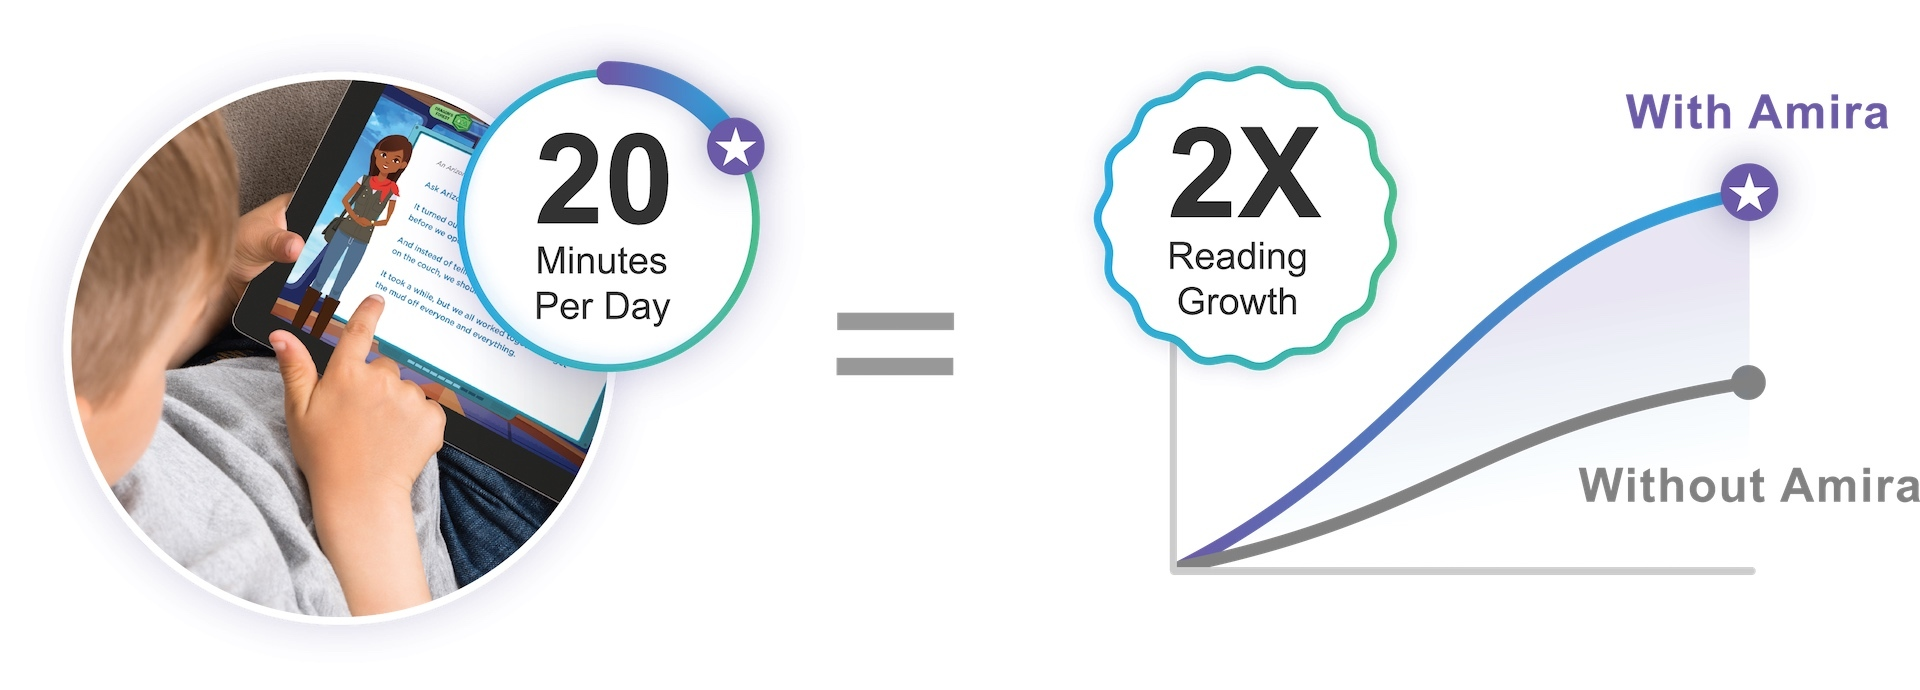 Child playing the Amira & The Storycraft app on a tablet next to a picture of a chart showing reading improvement over time with Amira & The Storycraft vs without. There is text on the image as well describing that just 20 minutes per day can equal doubled reading growth.